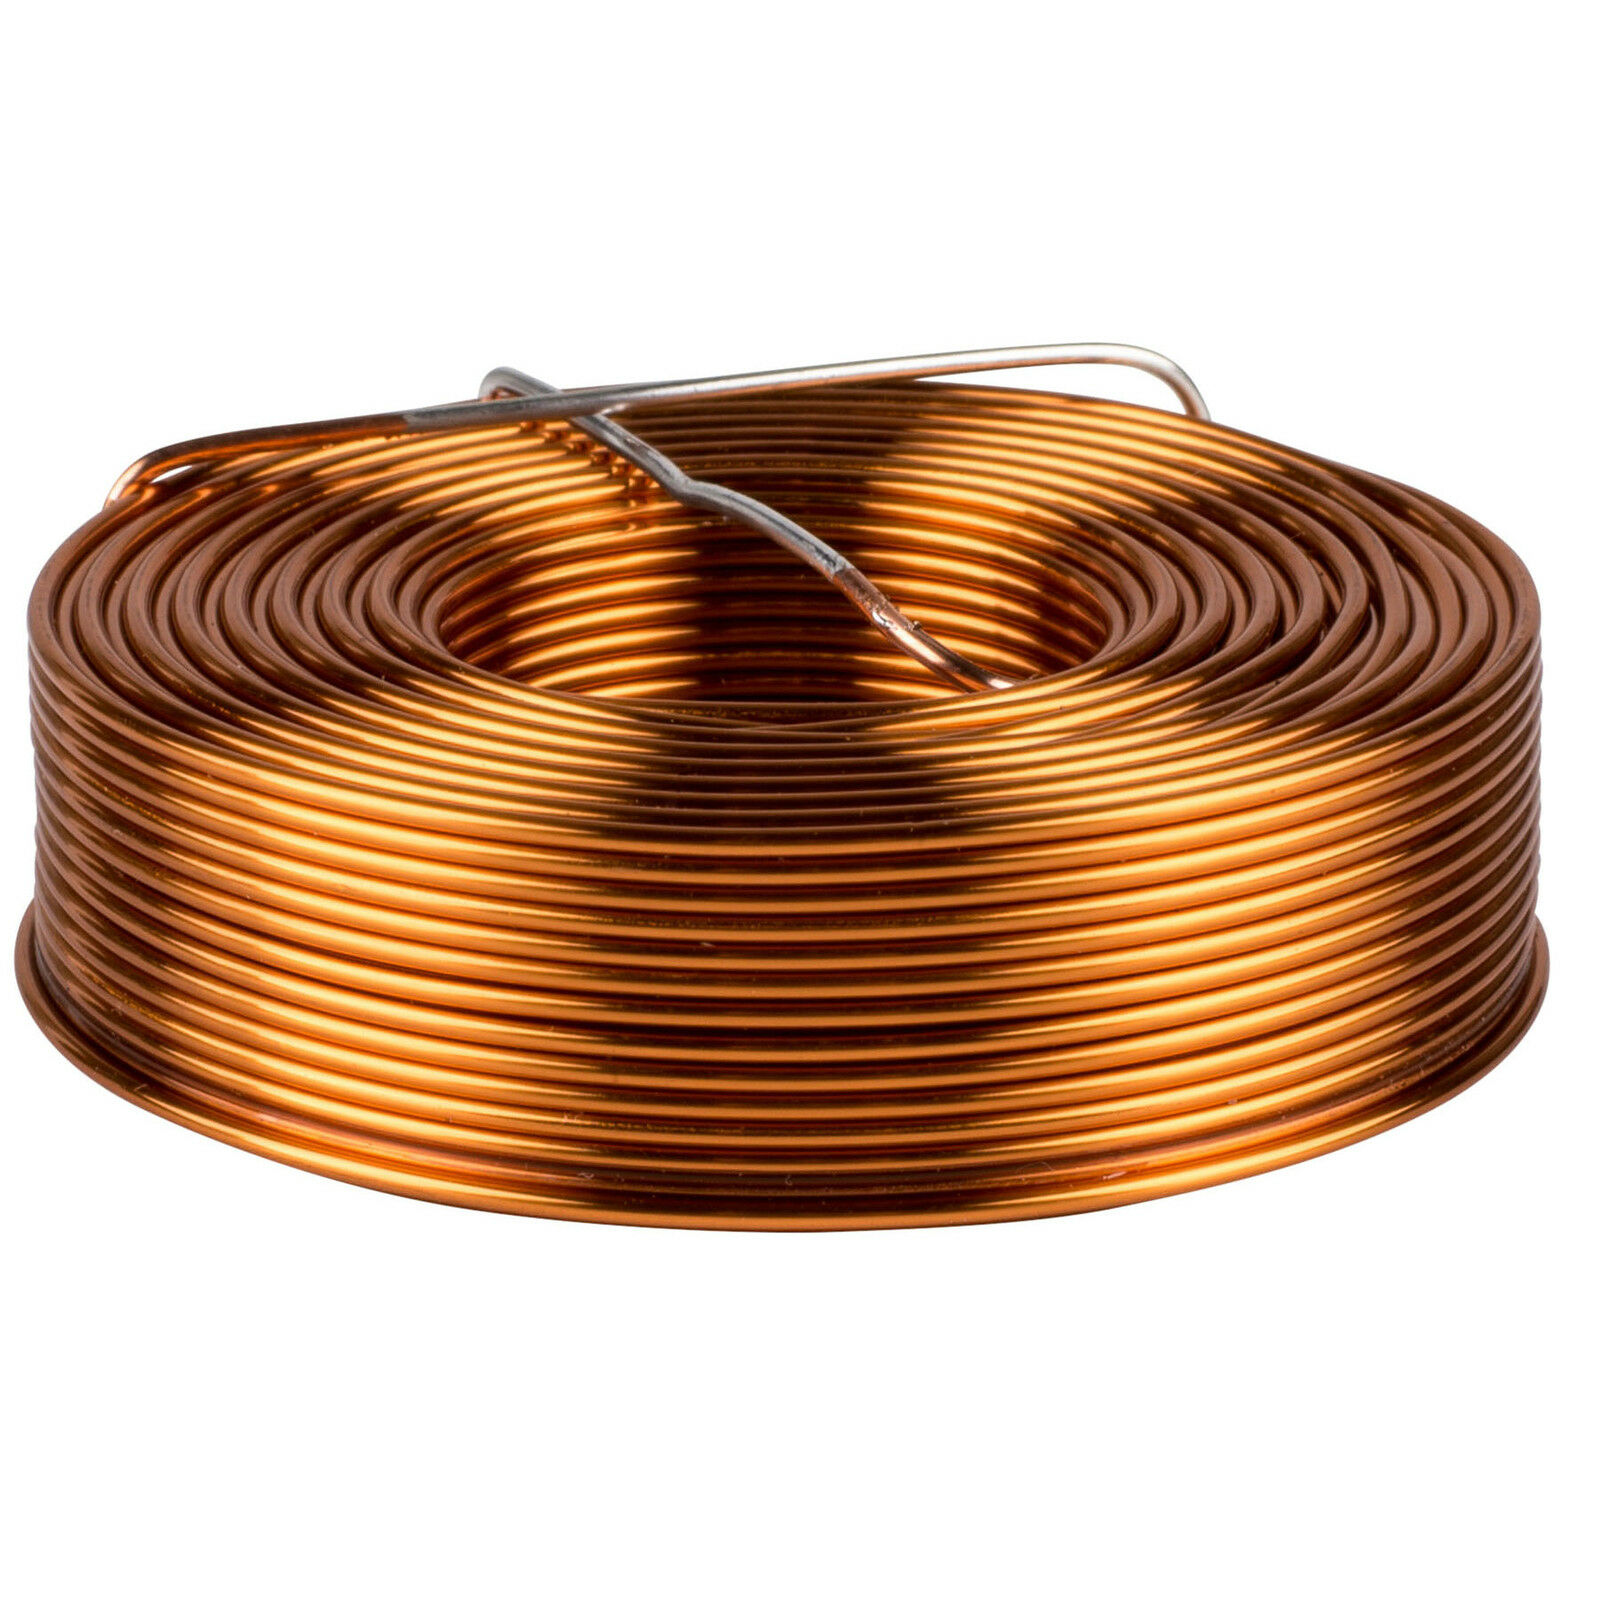 Jantzen 1962 10mH 18 AWG Air Core Inductor